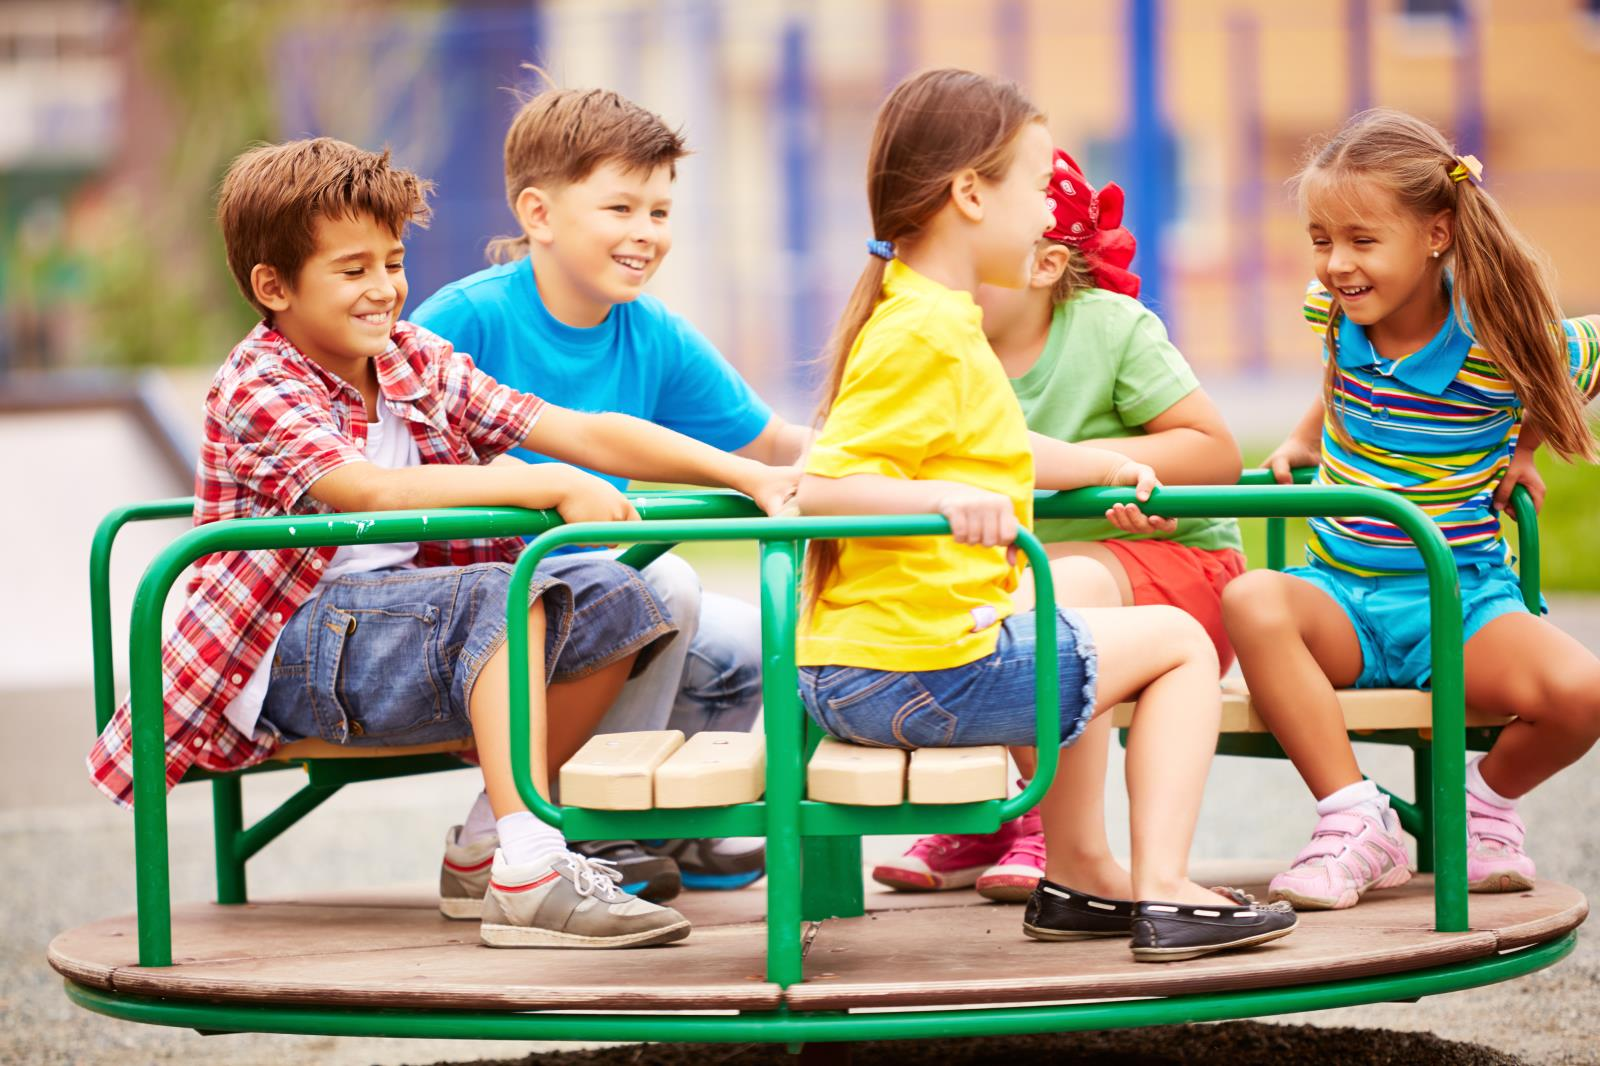 Kids on playground